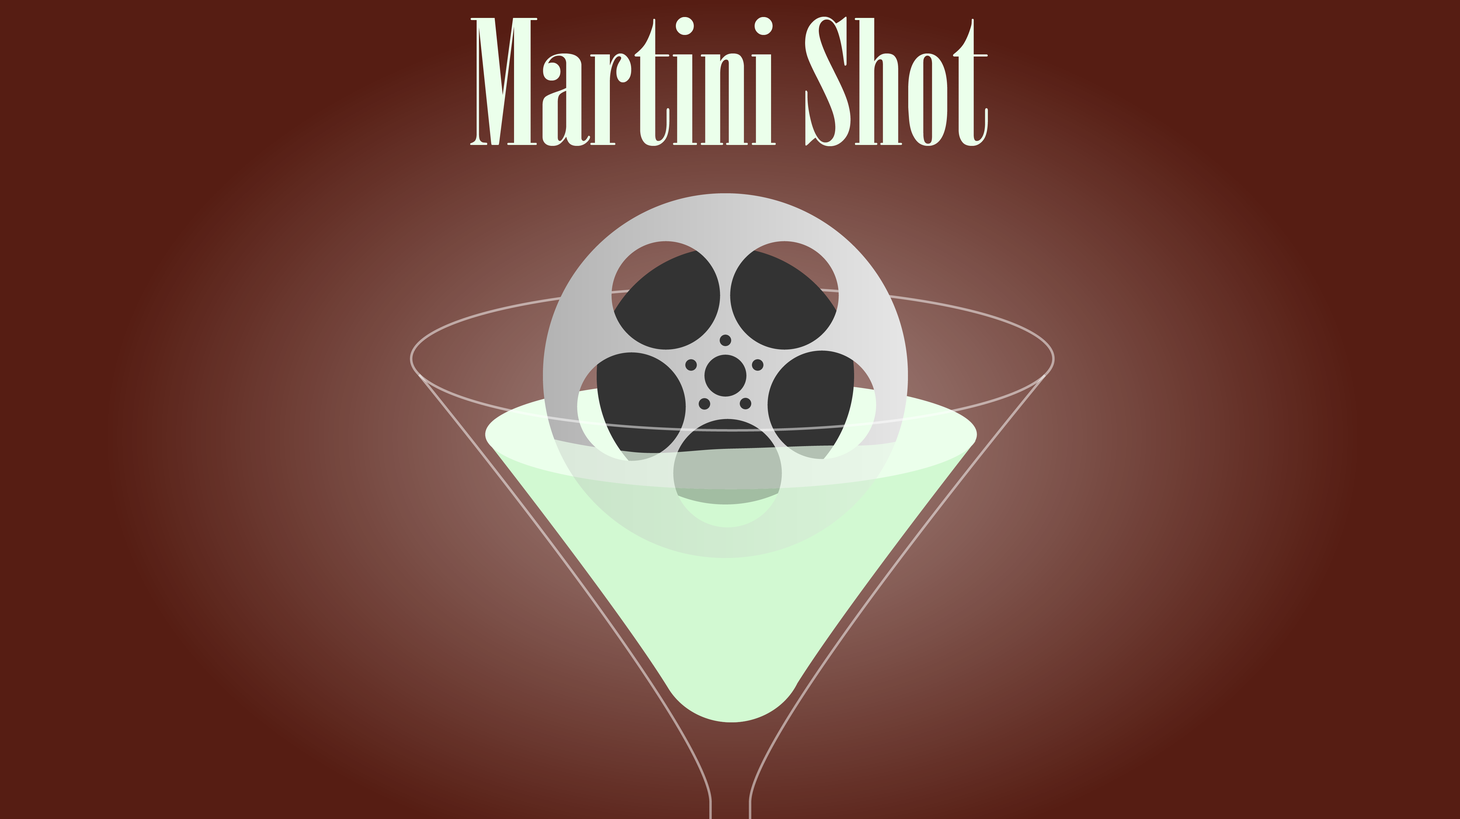 This is Rob Long, and on today's Martini Shot I try to figure out why everyone in my office is so cranky and ill-tempered. I mean, I know it can't be me.